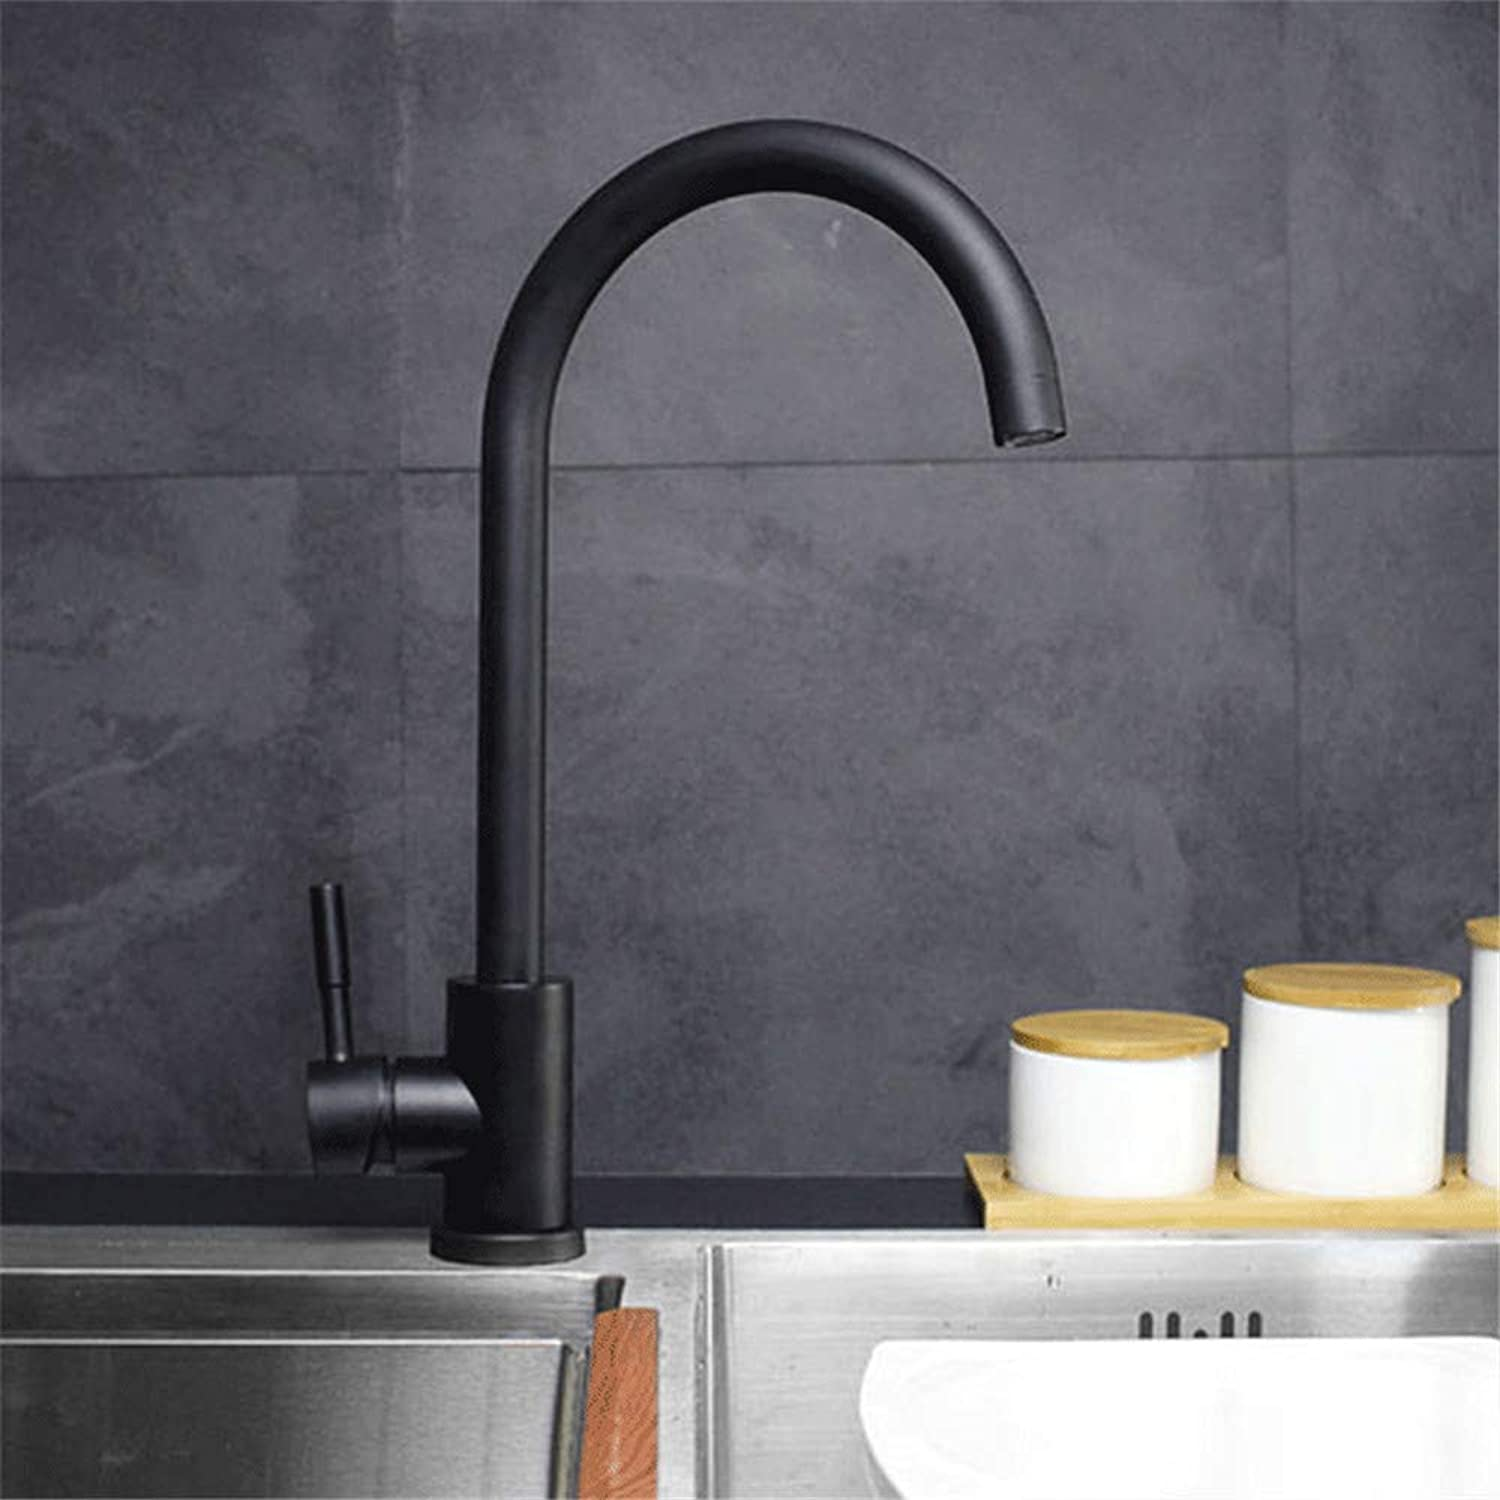 Oudan Stainless Steel Kitchen Faucet Black Paint Kitchen Faucet Hot and Cold Kitchen Faucet Mixing Water 304 Lead Lavatory 8410H (color   -, Size   -)